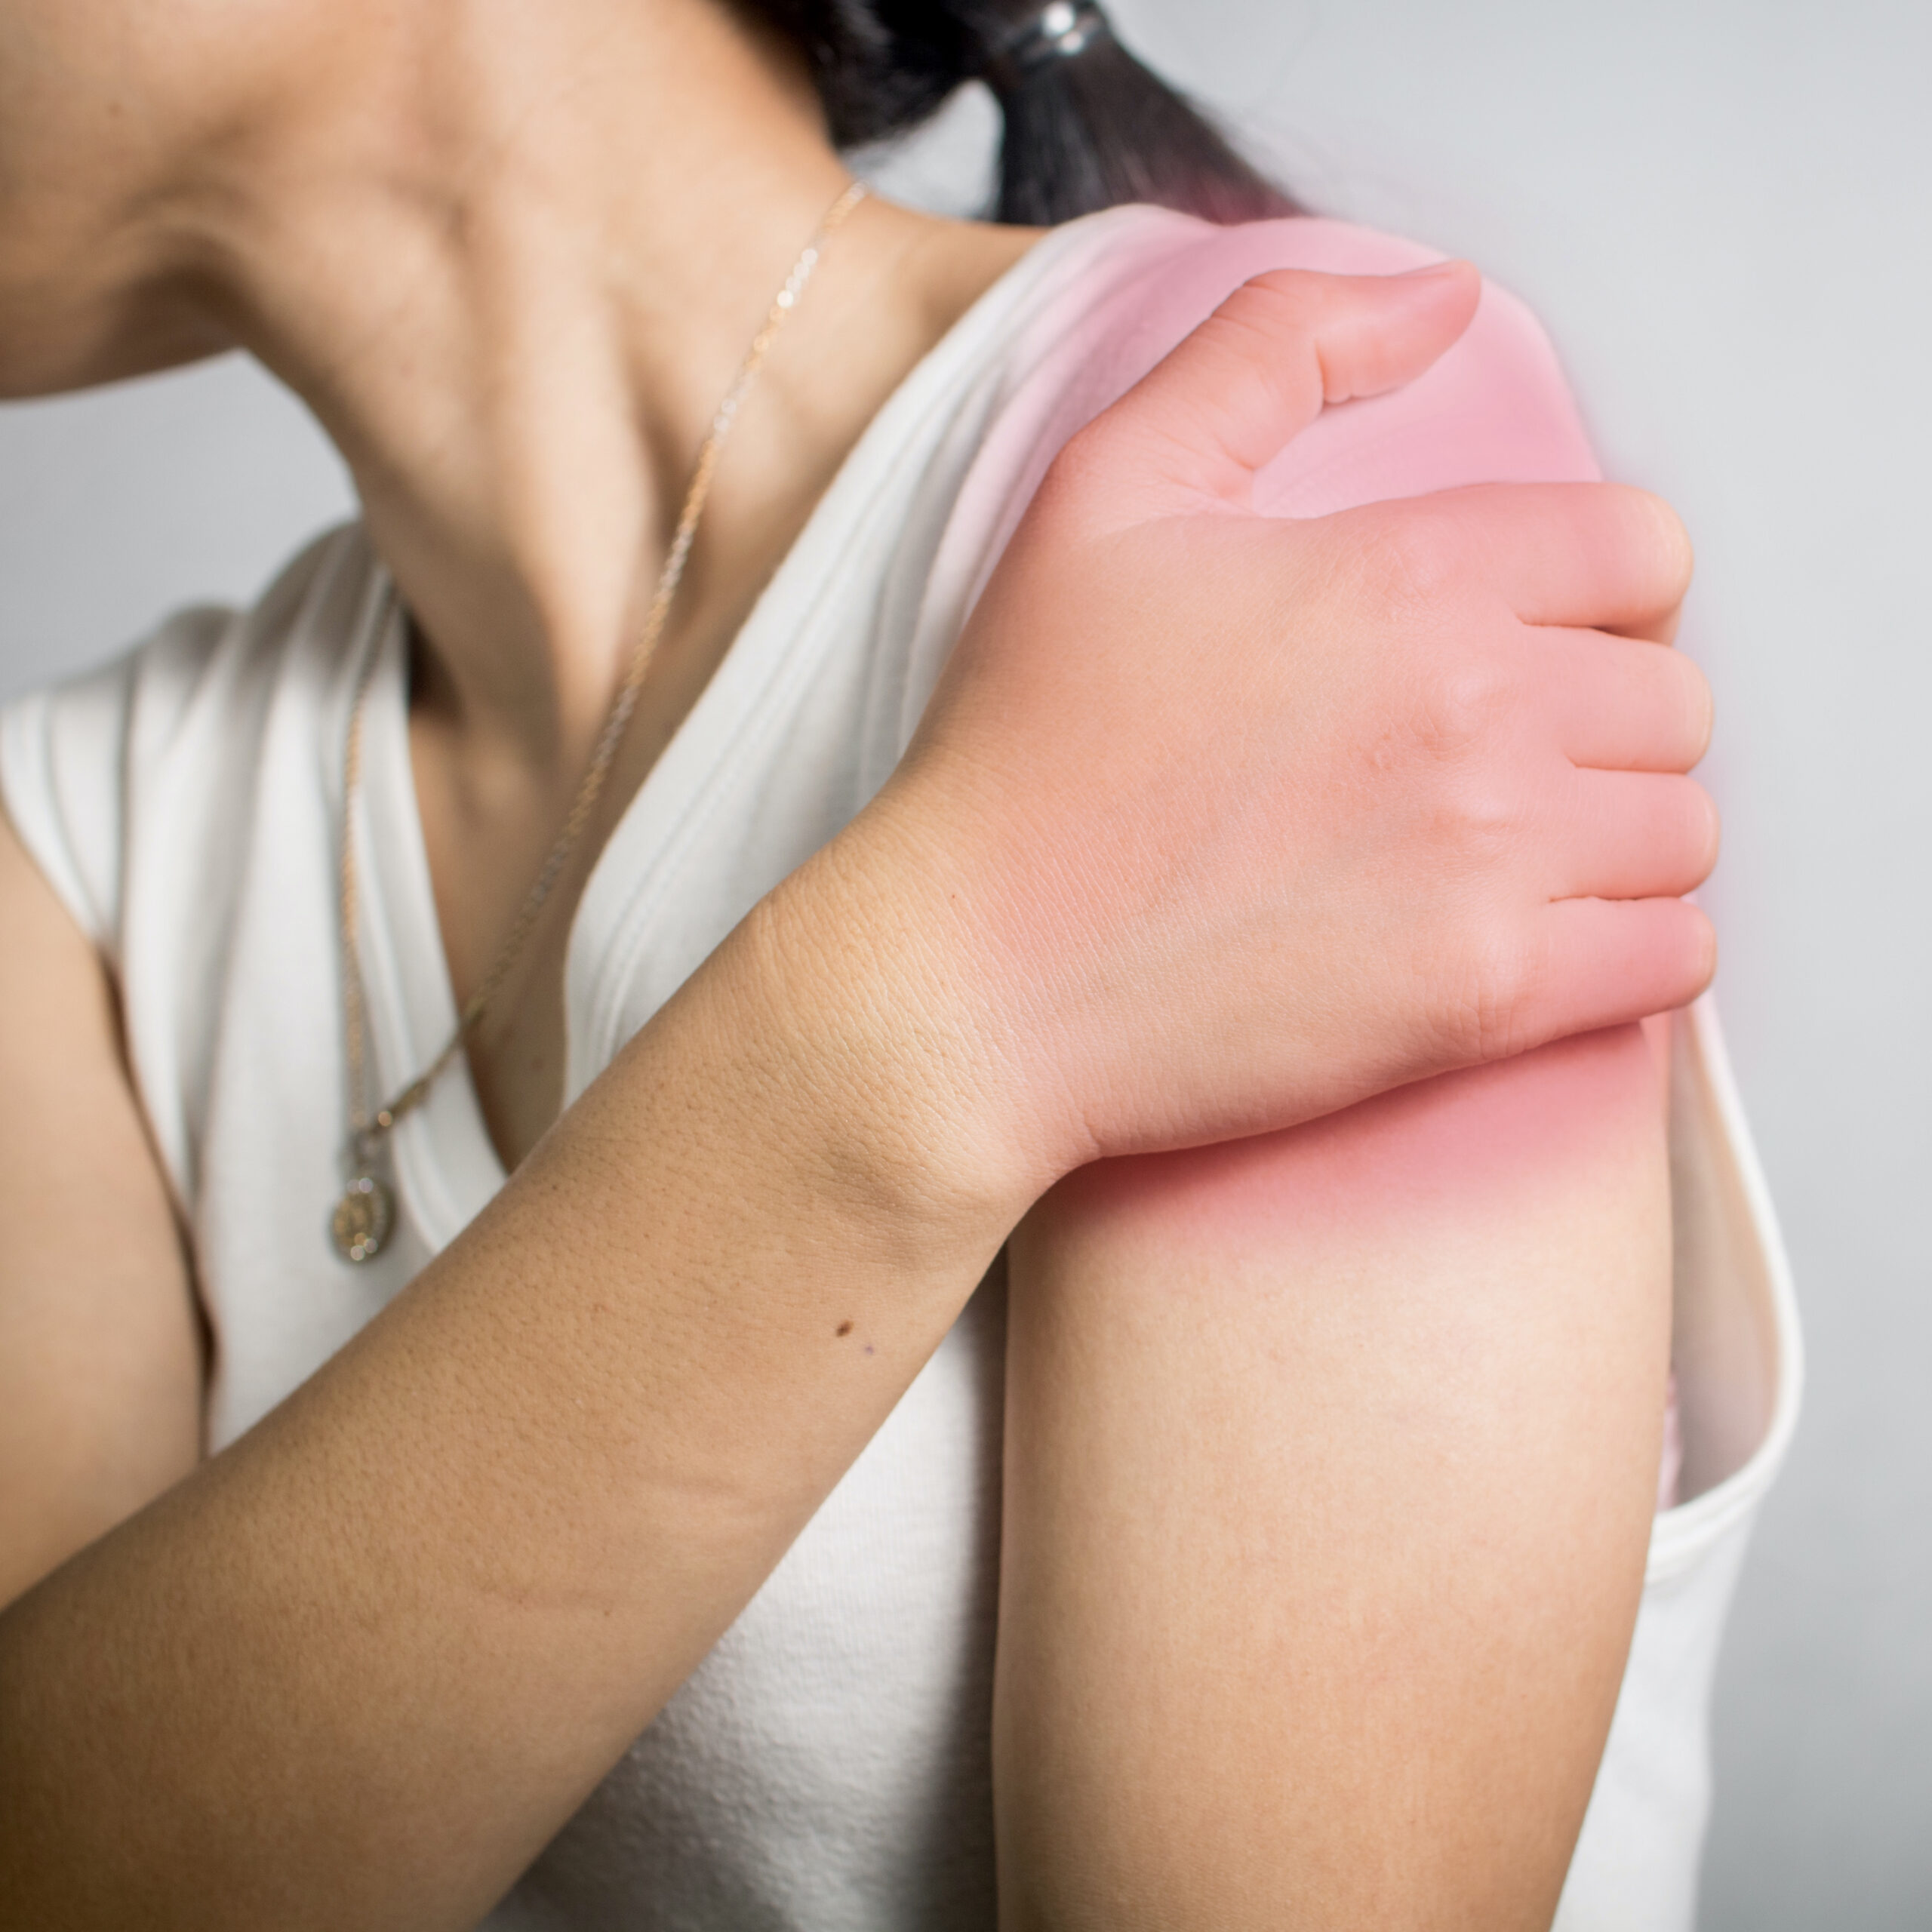 Frozen Shoulder at Midlife: What to Know and How to Manage